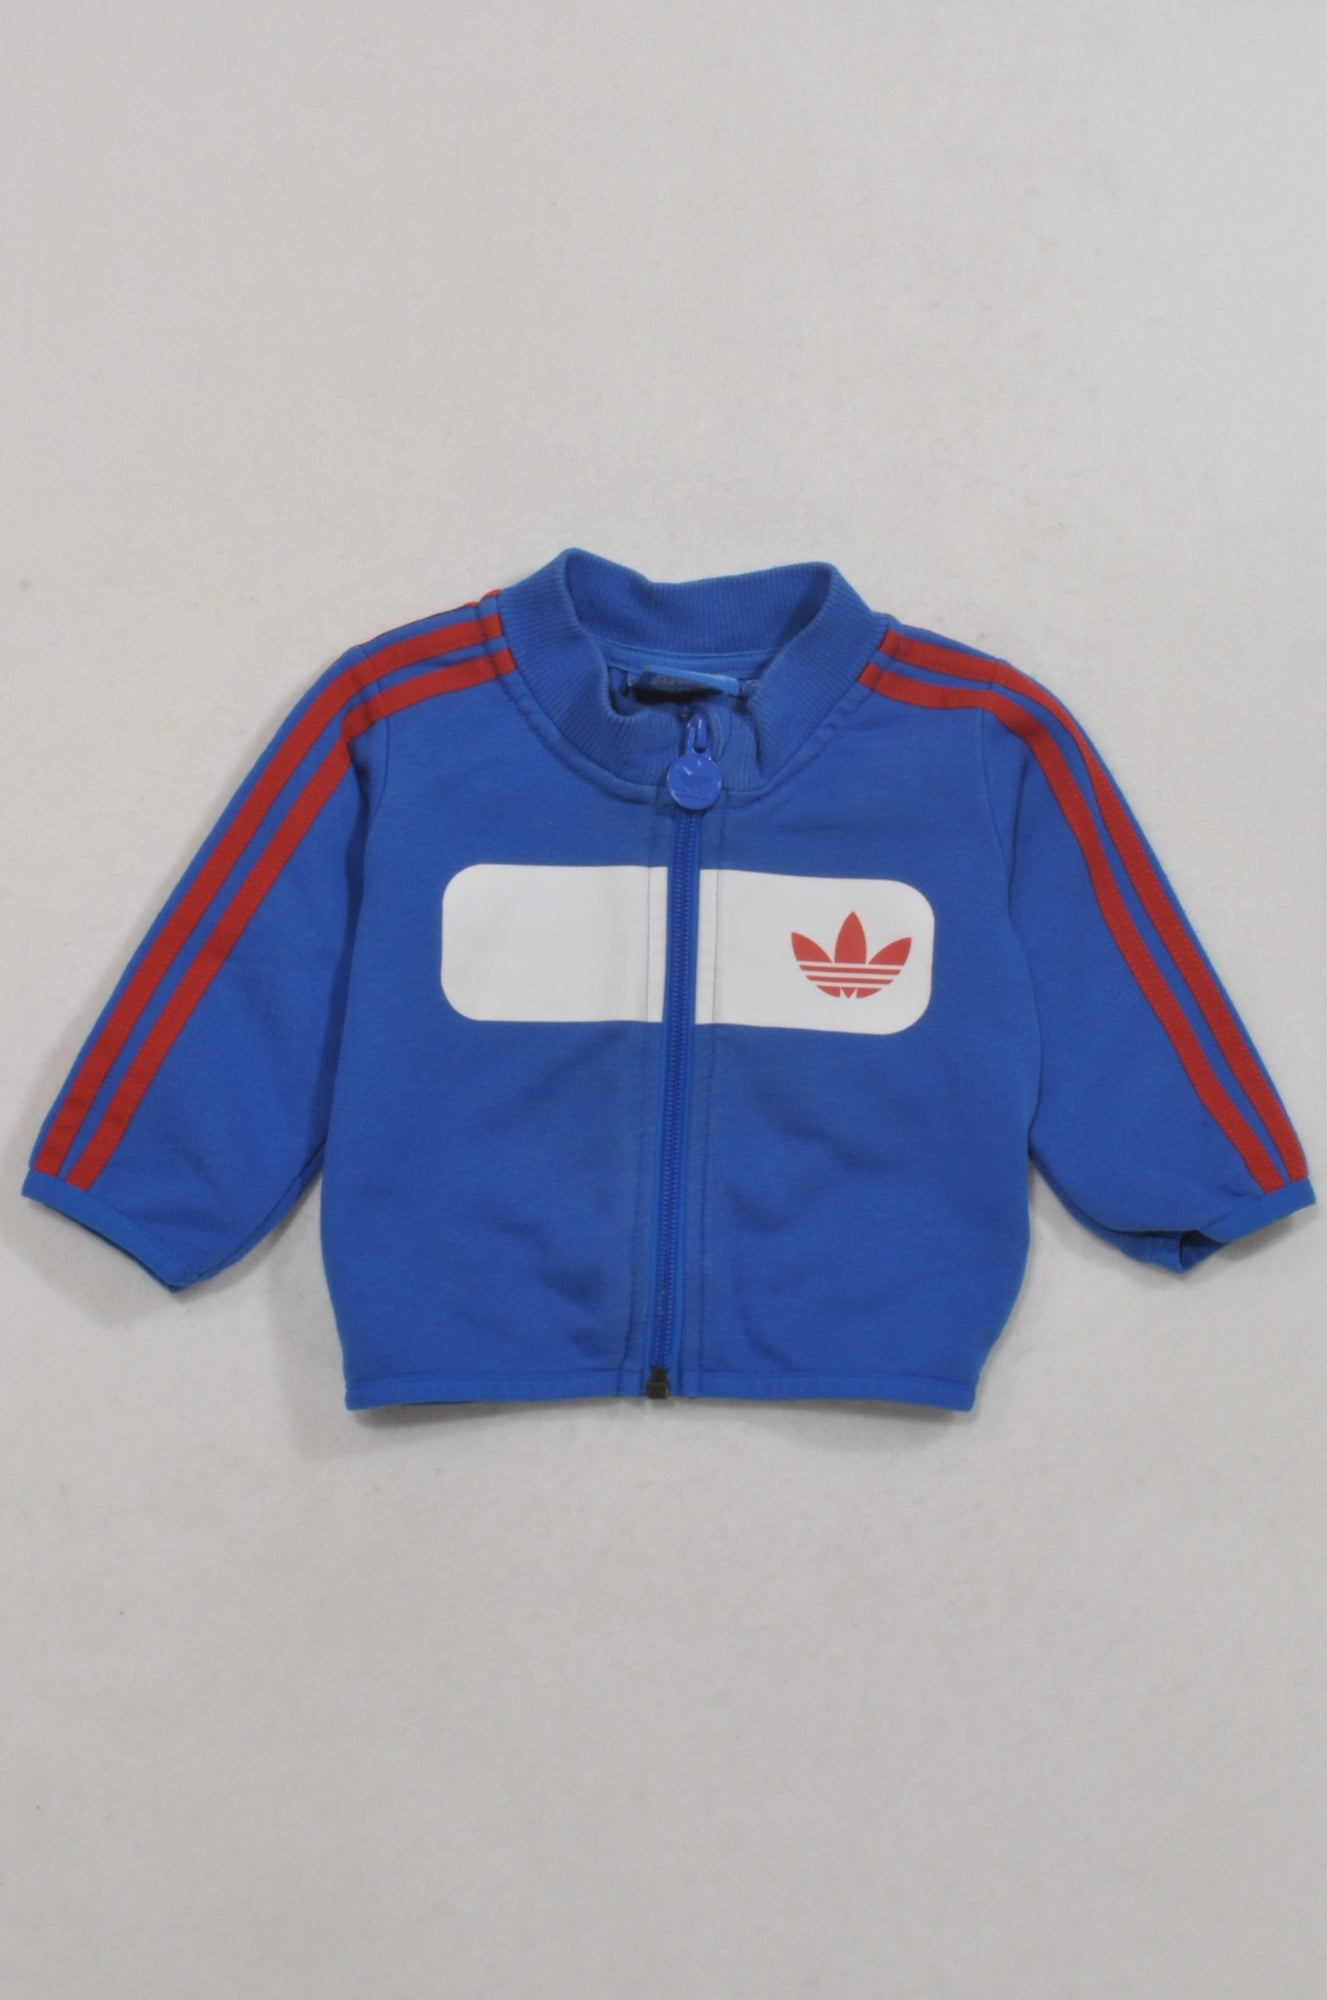 Adidas Blue Red Stripe Zip Up Jacket Boys 0-3 months